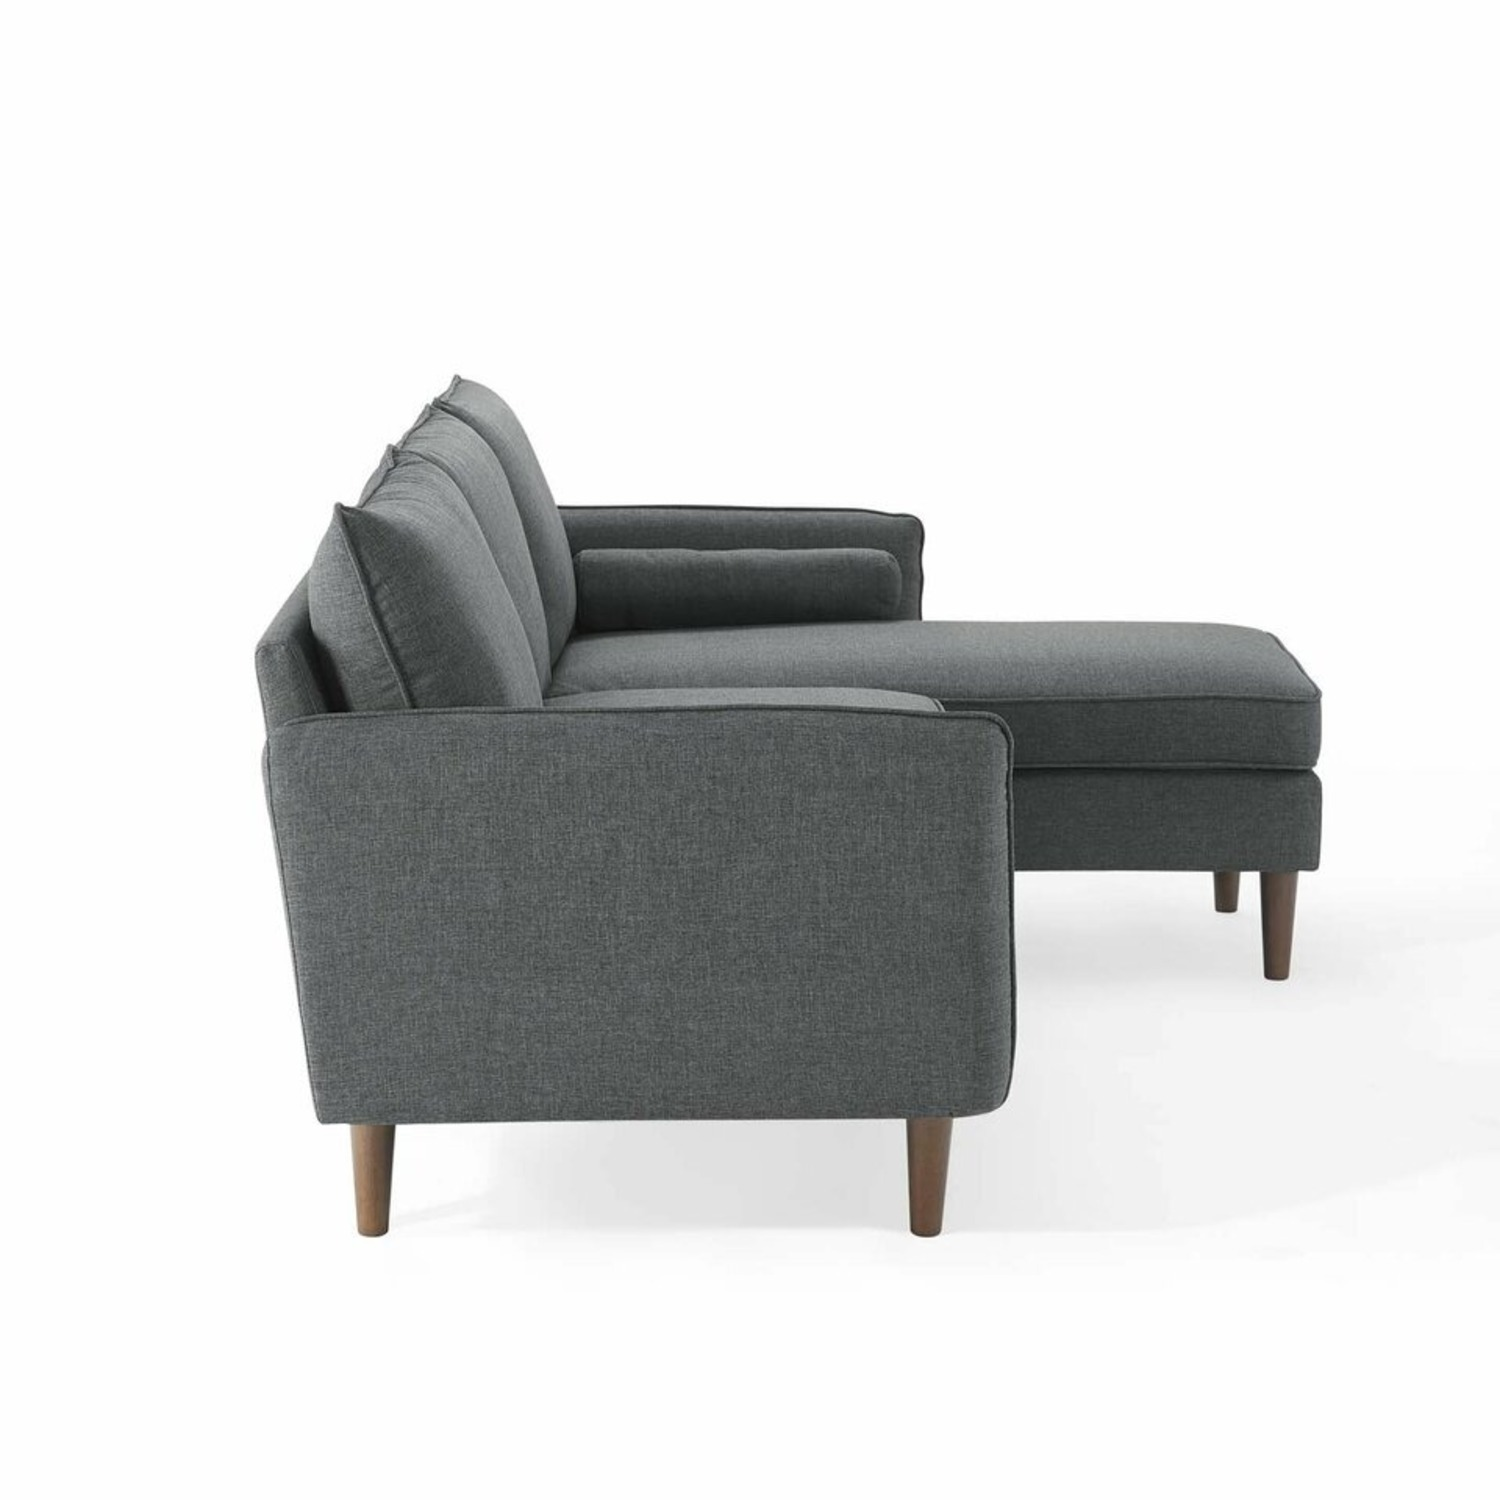 2-Piece Sectional Sofa In Gray Upholstery Finish - image-4